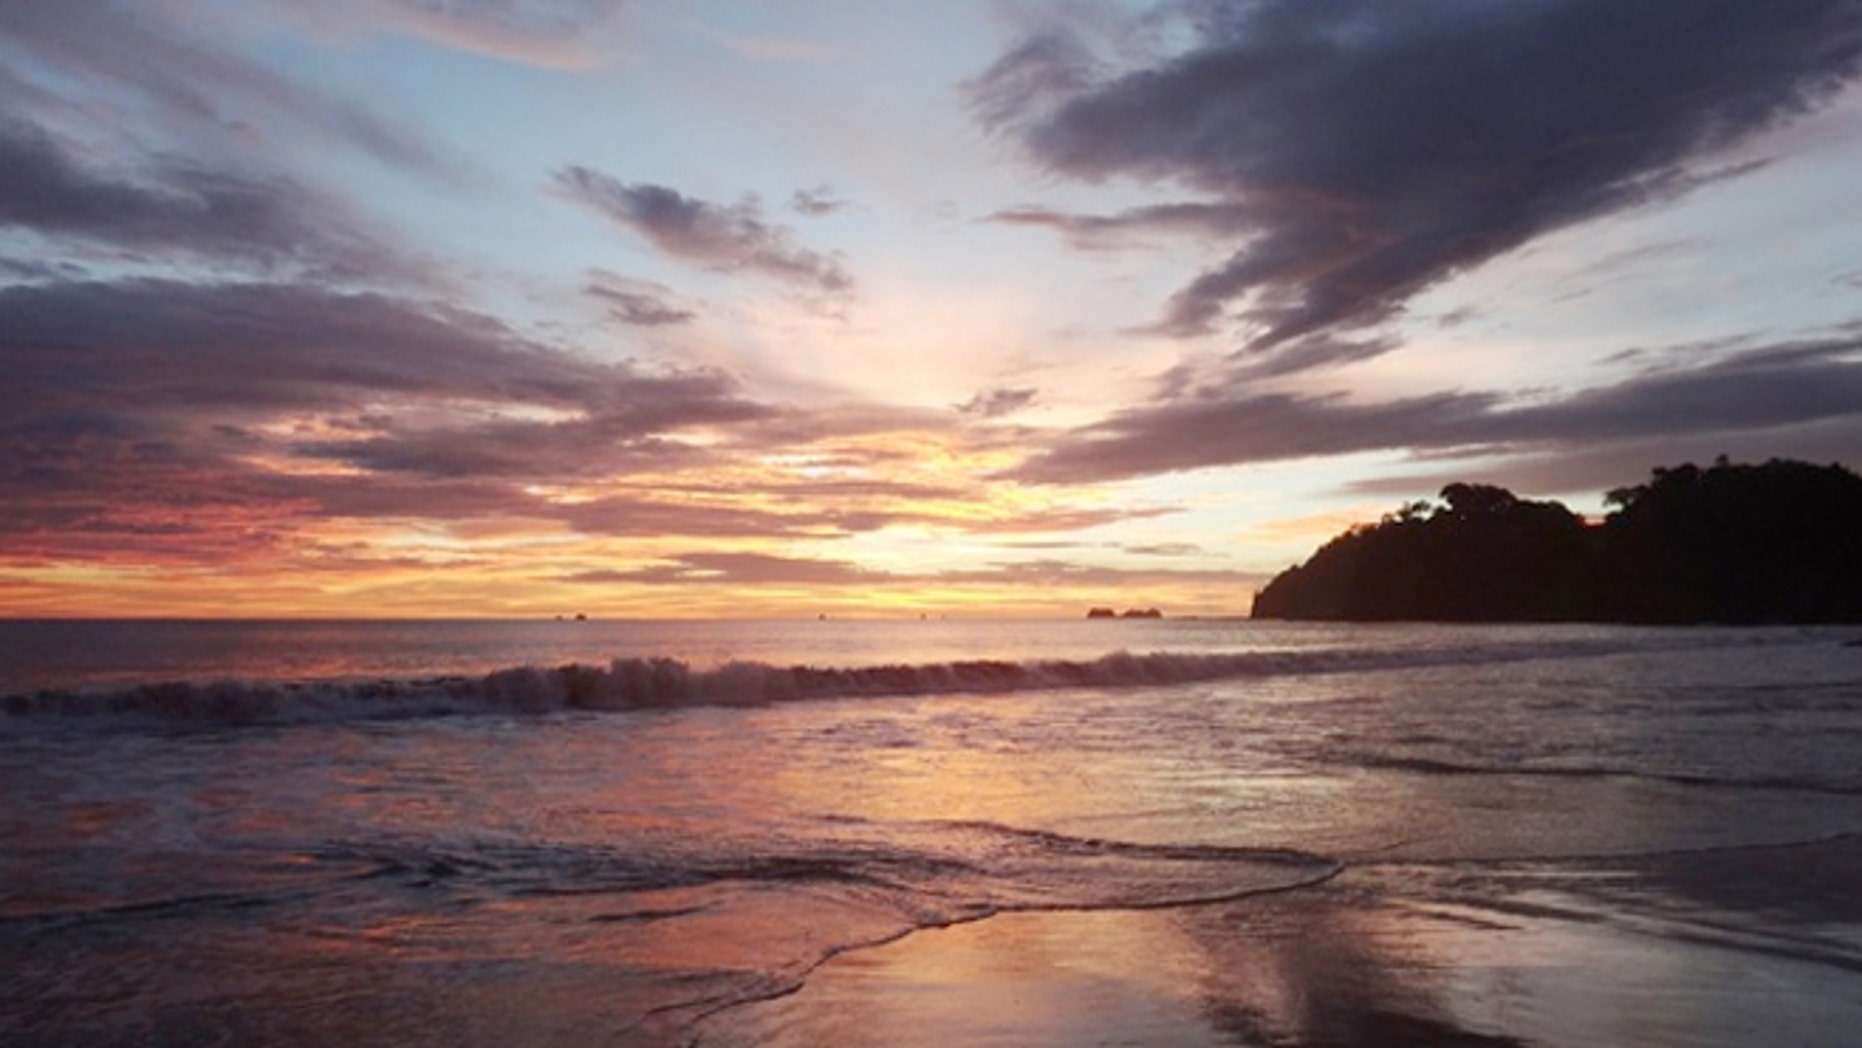 Costa Rica has something for everyone.